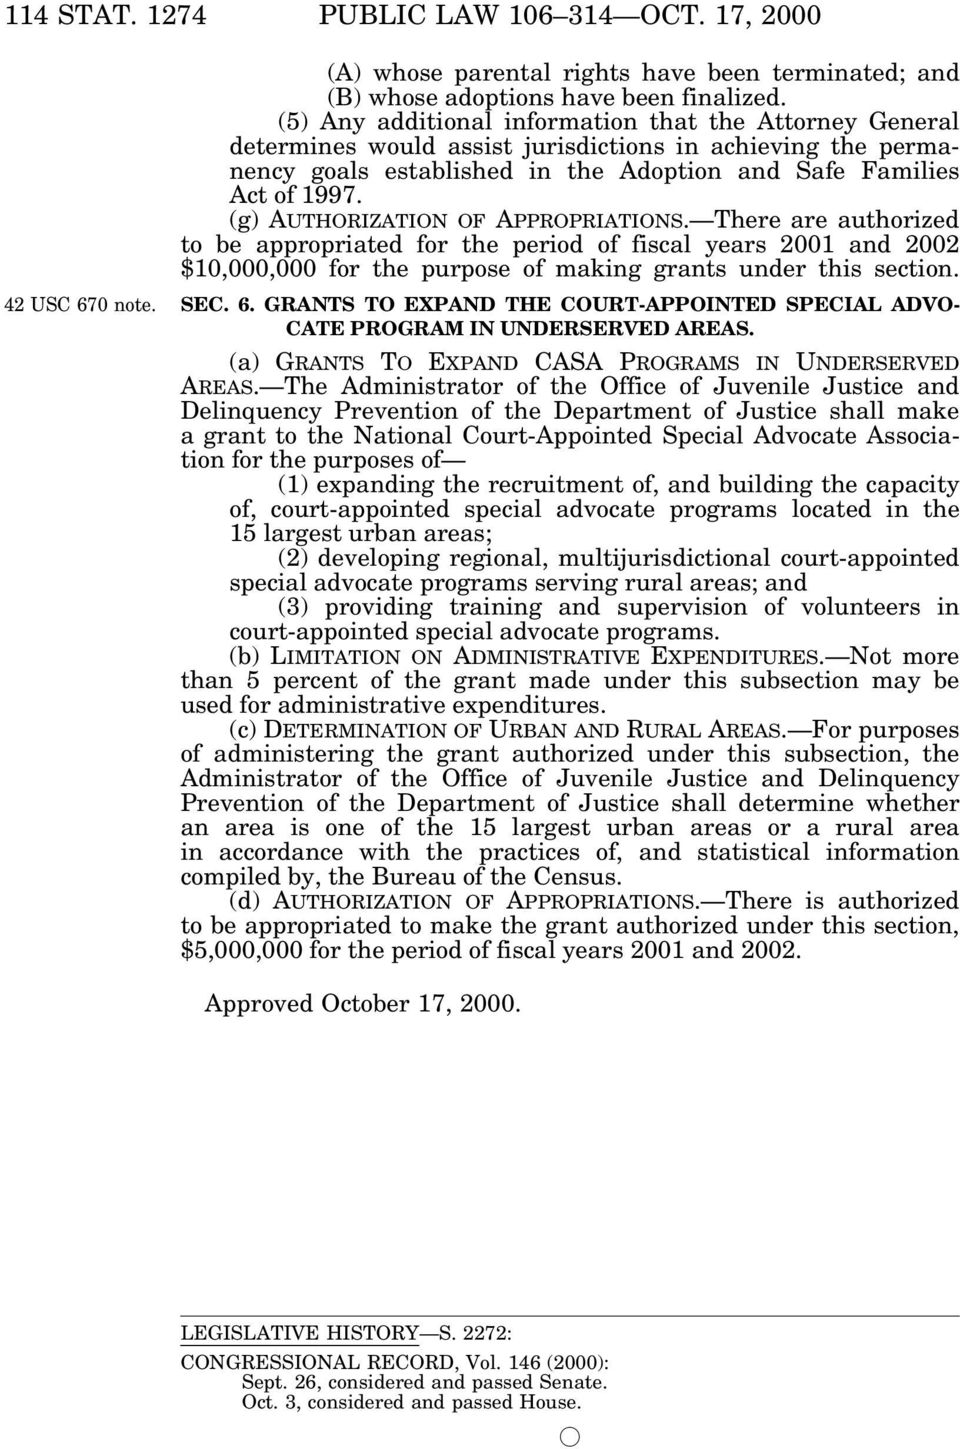 (g) AUTHORIZATION OF APPROPRIATIONS. There are authorized to be appropriated for the period of fiscal years 2001 and 2002 $10,000,000 for the purpose of making grants under this section. SEC. 6.